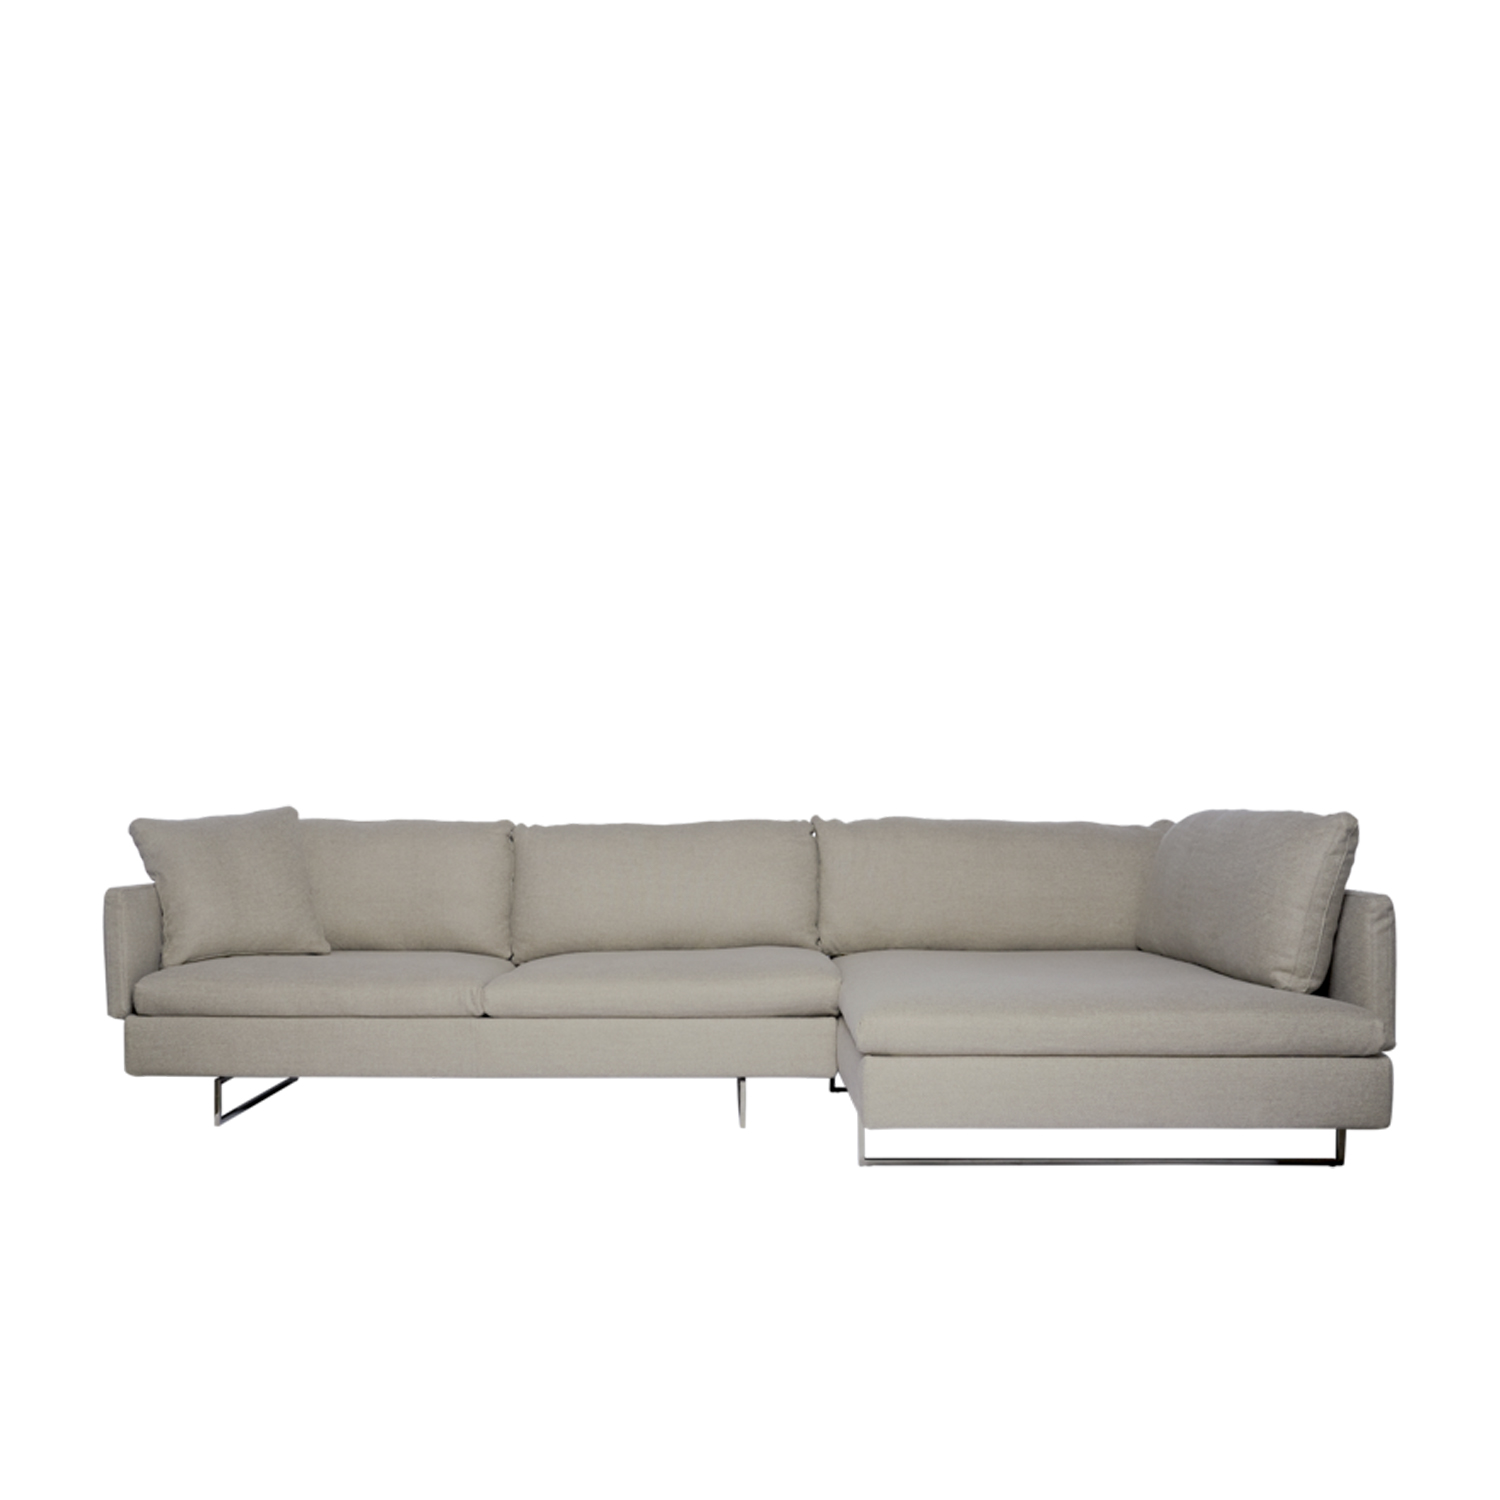 Voyage Modular Sofa - This sofa offers clean lines and a unique flexible design that gives a feeling of momentum towards a larger journey. The upholstery options are essential, contemporary and eclectic. The Voyage can be assembled and re-assembled with simple configurations adapting to any living scenario. This seating system reinforces Saba's ethos for interpreting the value of flexibility: from the slender backrests that allow utmost comfort with minimal volume to the multiple configurations they enable. The Voyage can be configured into two sofas or one sofa in vis a vis positioning, or into a chaise lounge formation. It's available in two variations - with methacrylate or chrome finished metal feet.  This item is available in various sizes and combinations. Please enquire for more information and prices.  Materials Structure in wood padded with polyurethane foam covered with velfodera on a polyester fiber coated backing 150gr/sqm. The back panels are in plywood padded with variable-density polyurethane foam and covered with velfodera 100gr/sqm. Feet 10 cm high in transparent methacrylate with rectangular section or in metal with black nickel finishing. The seat cushions are made with variable density polyurethane, covered fine velvet coupled with polyester fiber 280gr/sqm. The back and armrest cushions are in siliconised microfiber unravelled 100% polyester quilted into sections and covered with 100% white cotton fabric. The roll armrest is filled with polyurethane foam and covered with cotton fodera coupled with polyester fiber 380gr/sqm. | Matter of Stuff